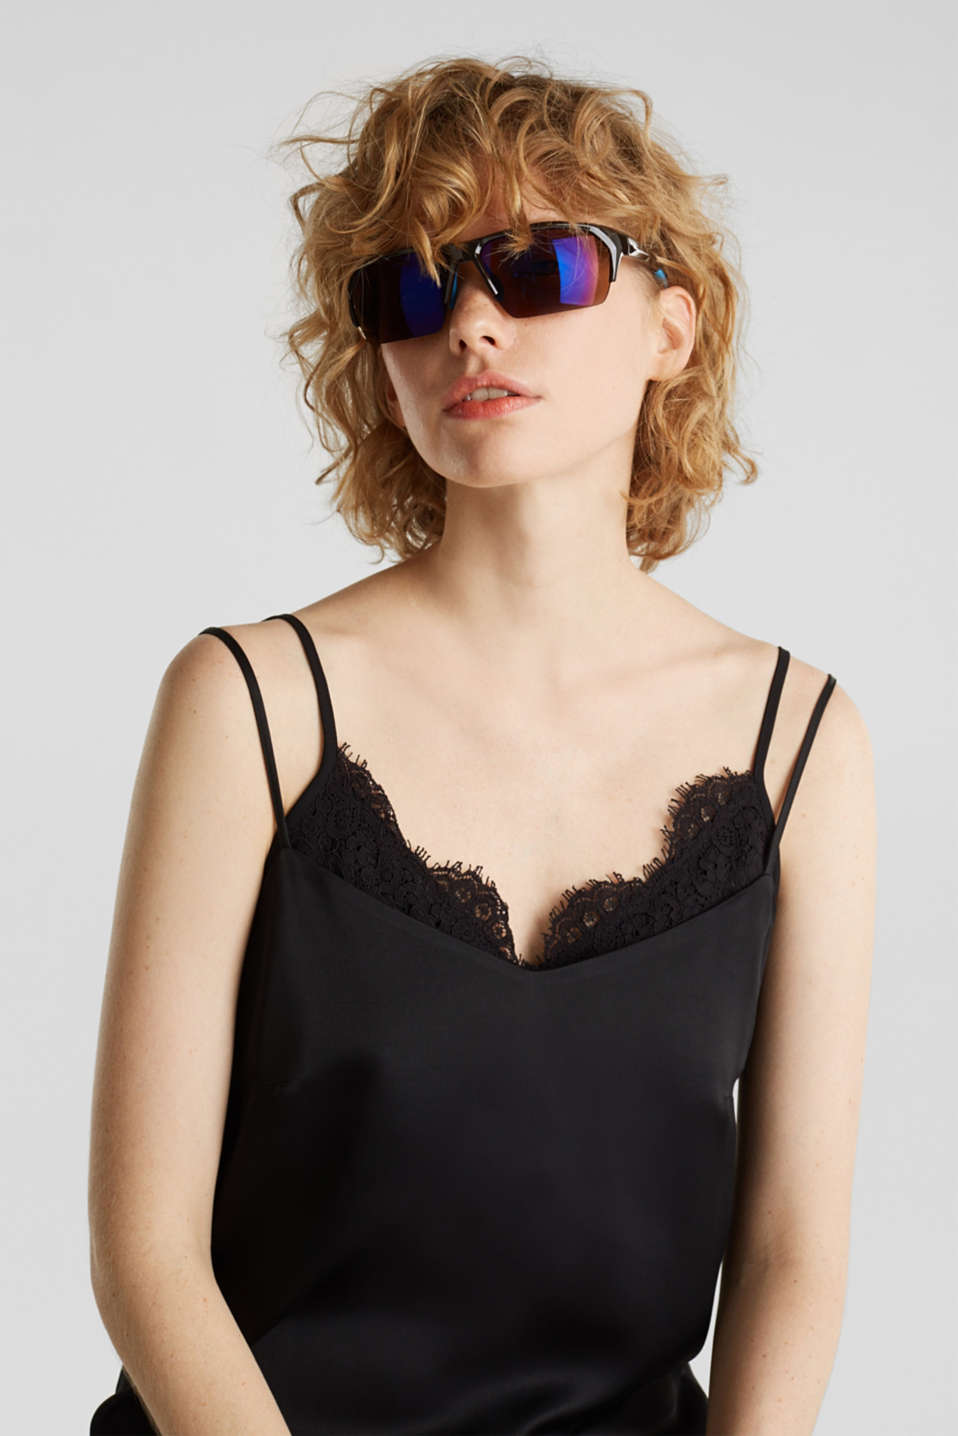 Sports sunglasses with mirrored lenses, LCBROWN, detail image number 2